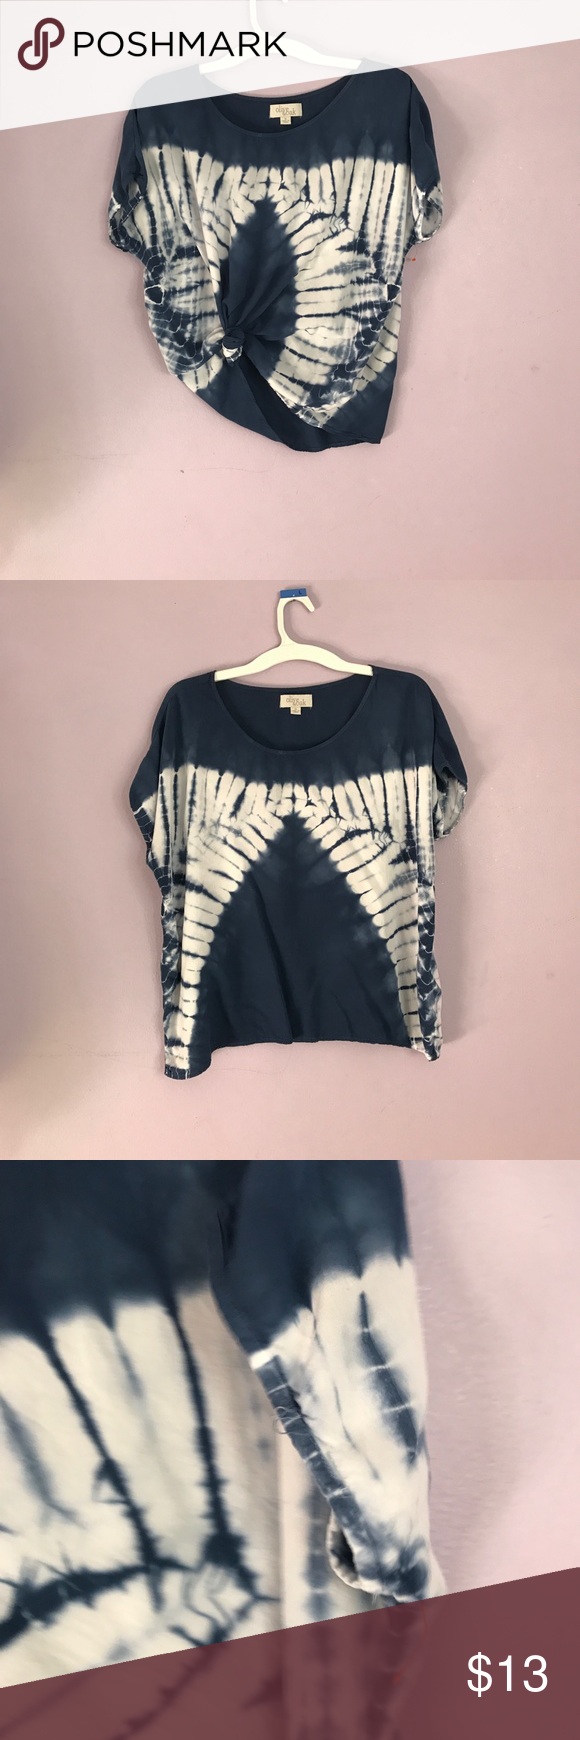 Tie Dye Tye Dye Short Sleeve Navy & White Blouse This is a pre loved top from Olive & Oak with some signs of wear along the bottom hem & the sleeve. Olive & Oak Tops Blouses